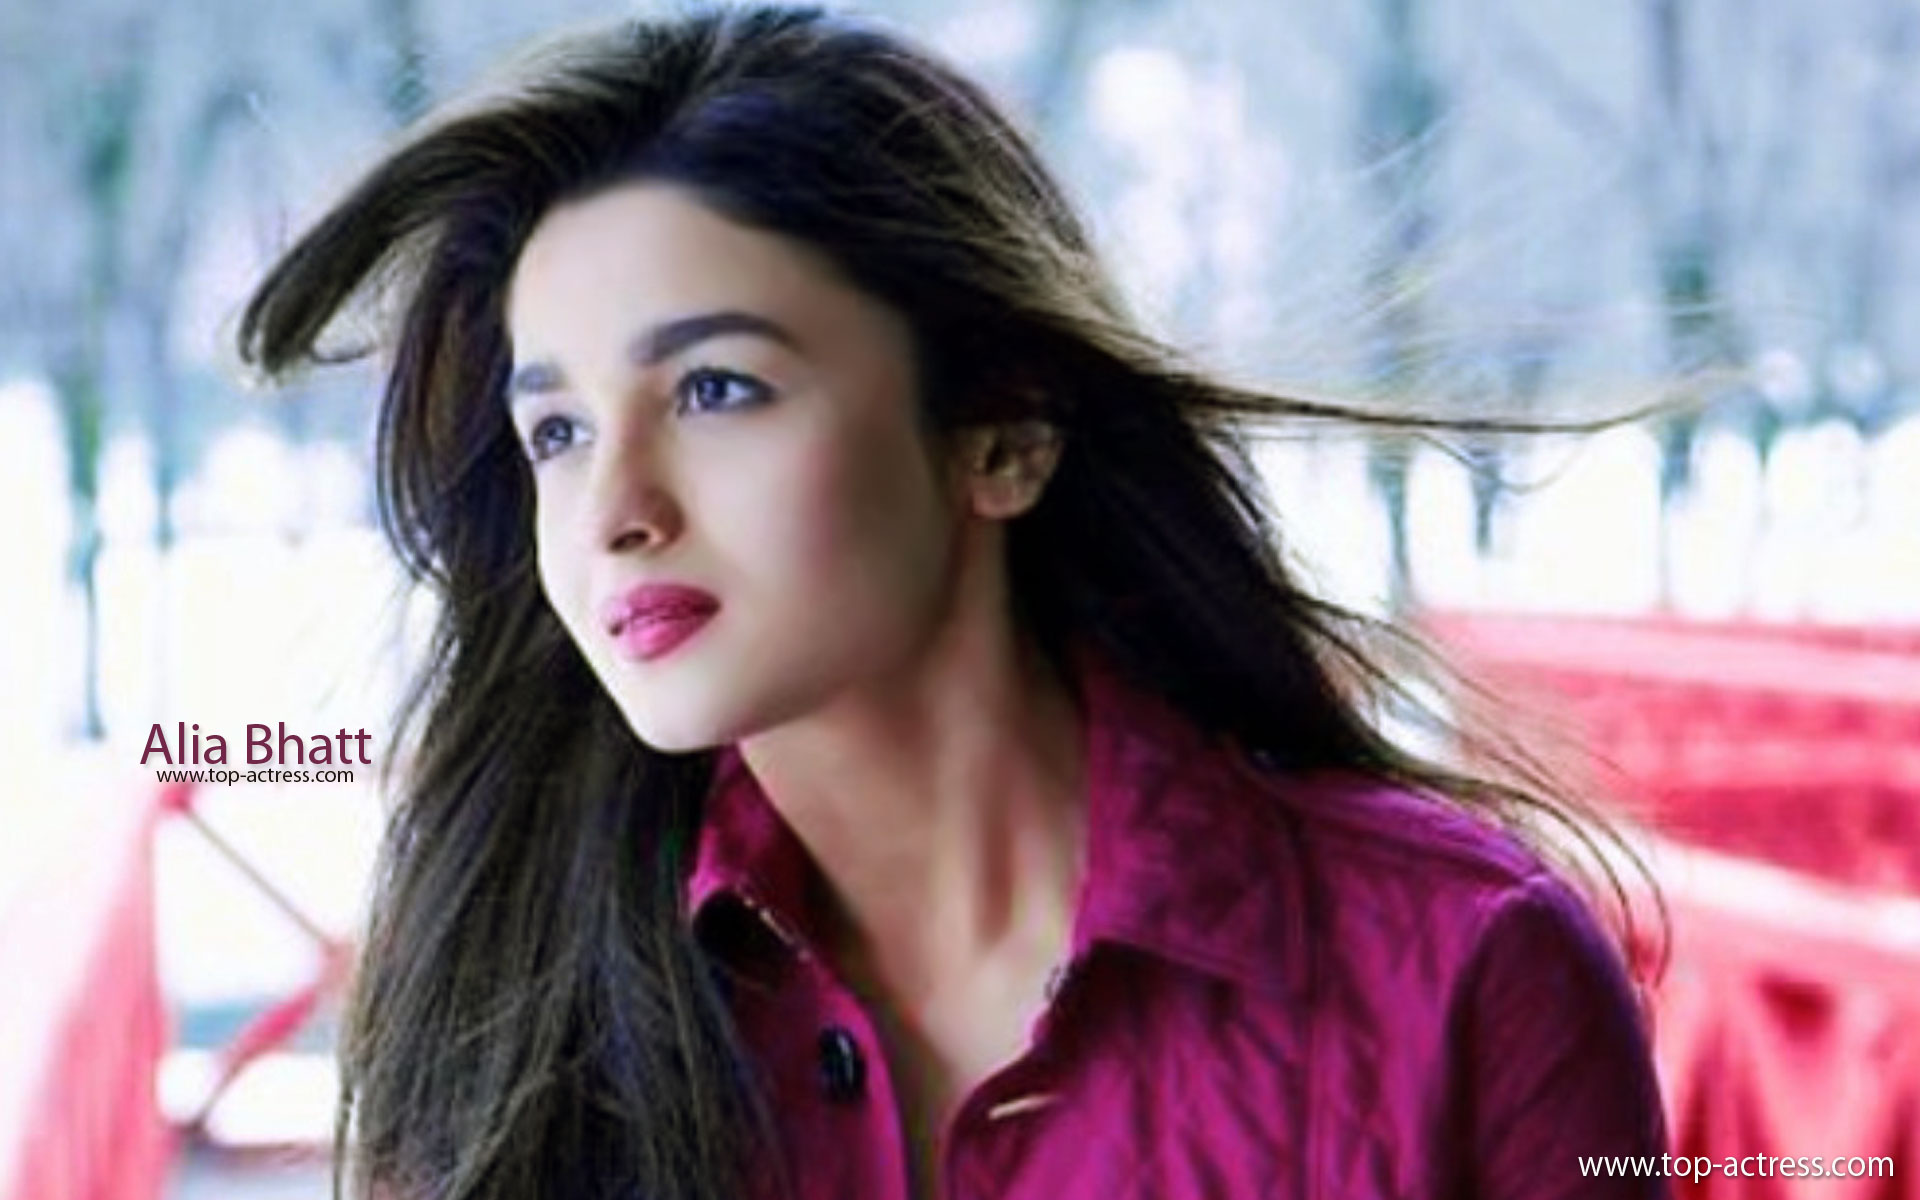 alia bhatt images gorgeous alia bhatt wallpaper hd wallpaper and